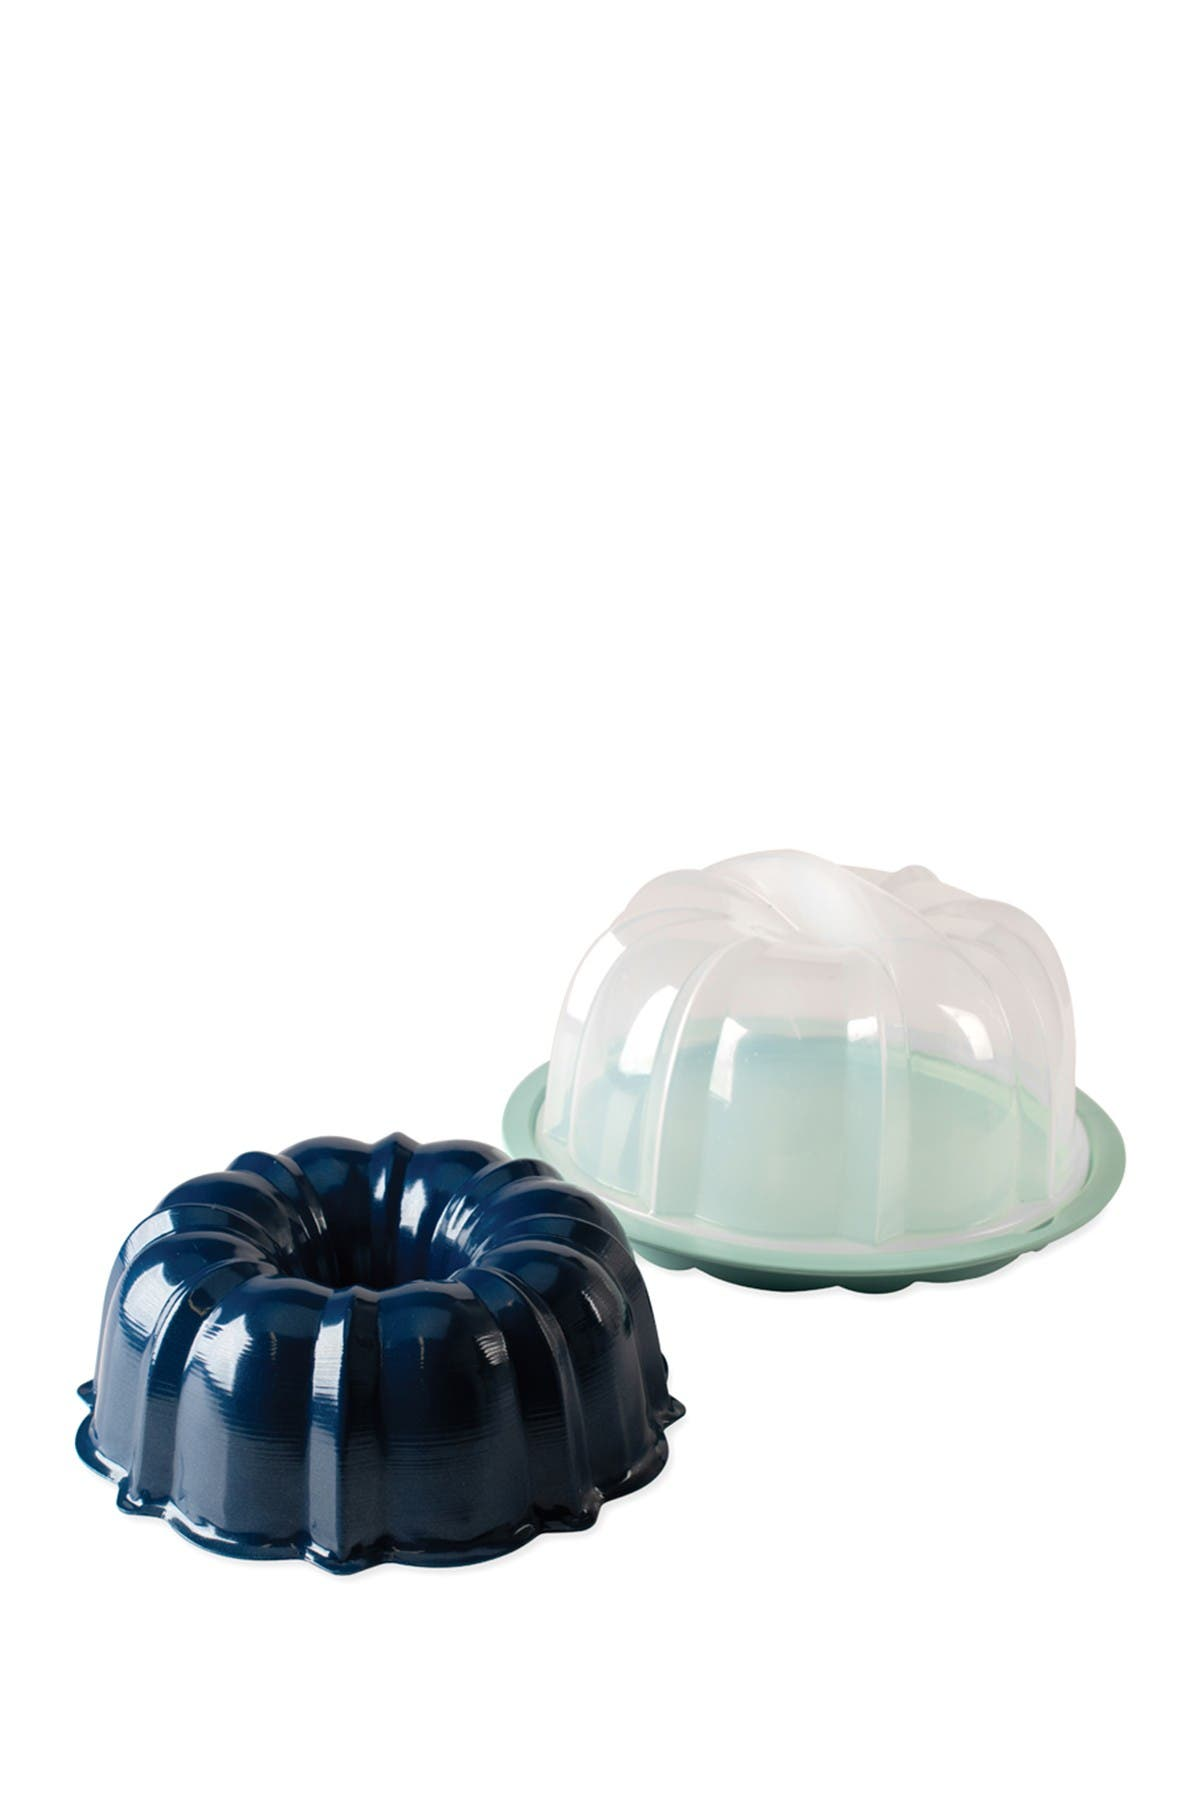 Image of Nordic Ware Bundt Pan with Translucent Cake Keeper